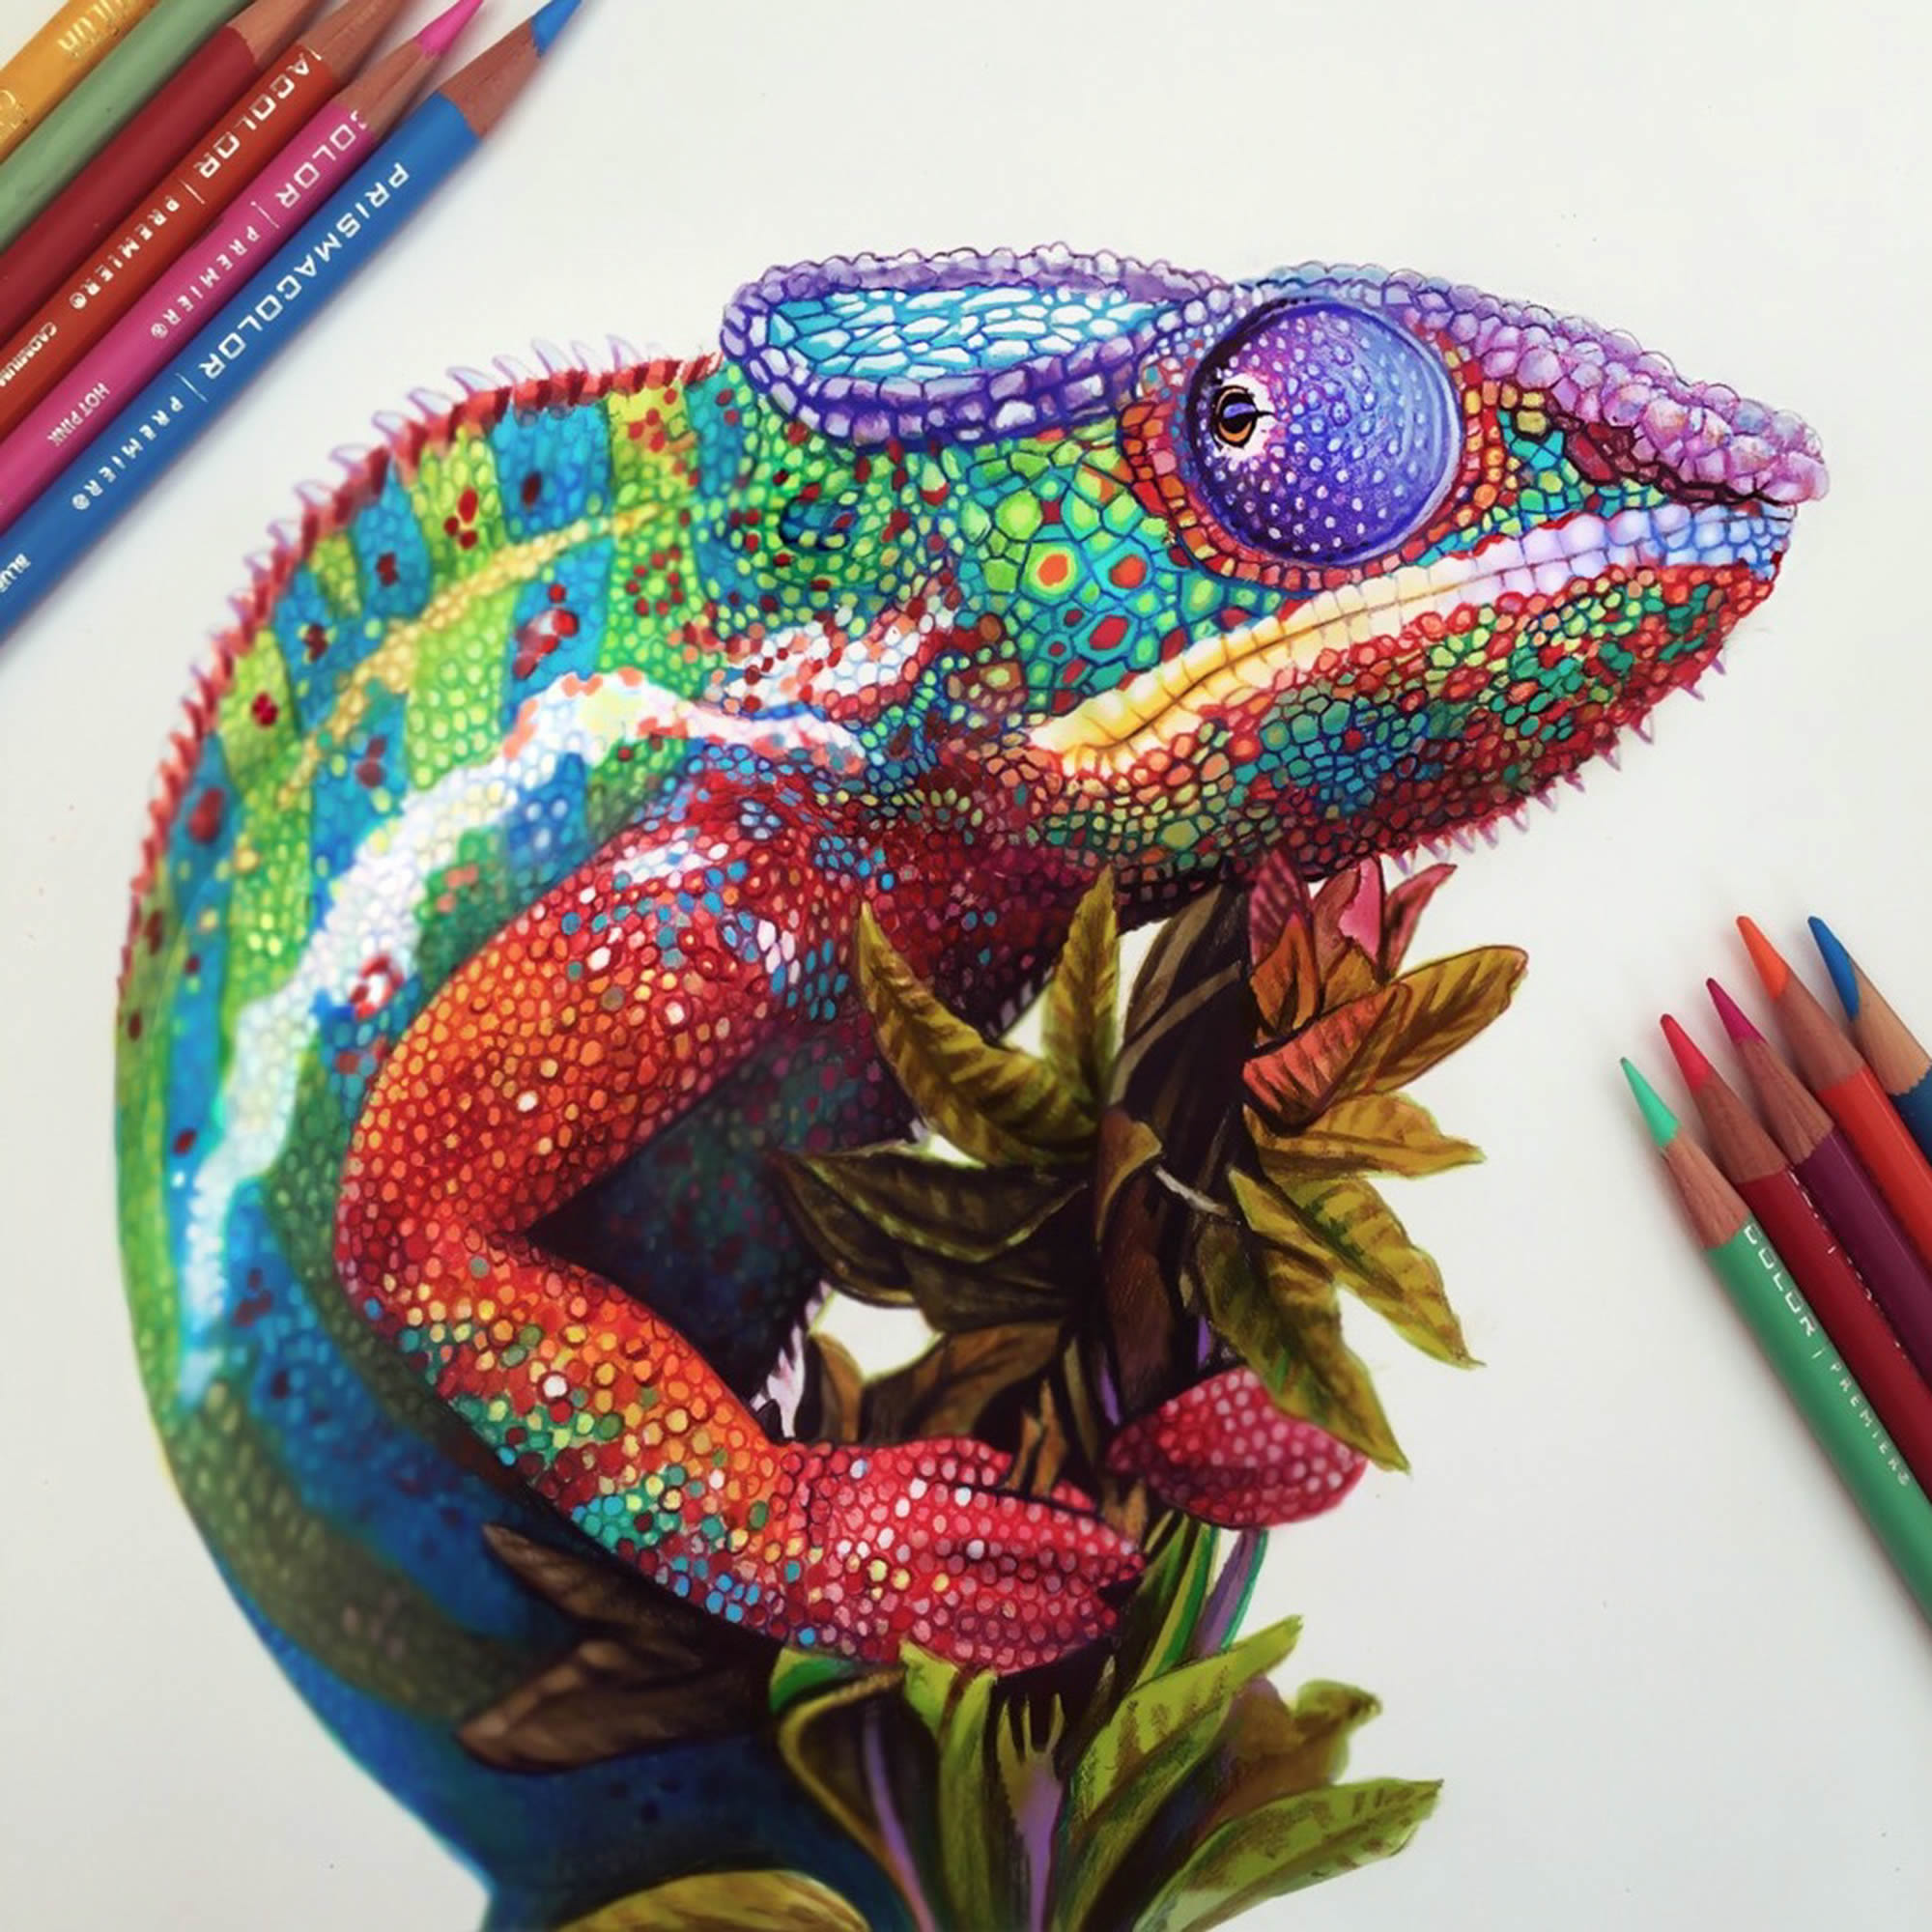 Chameleon drawing, colorful